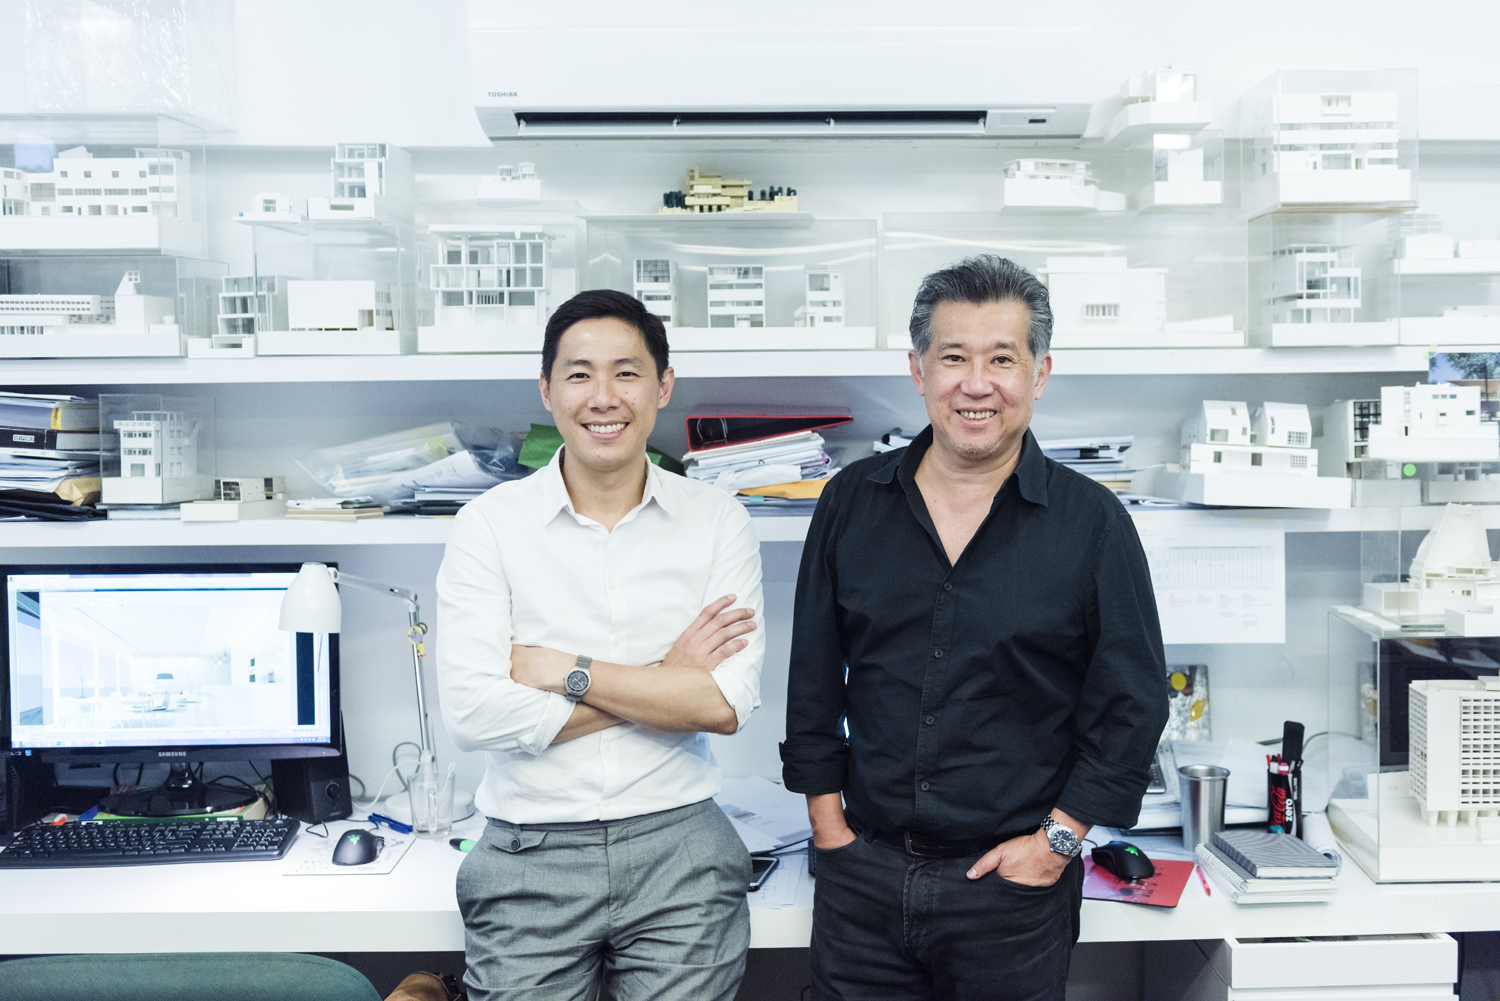 Architects Rene Tan and Jonathan Quek at their office